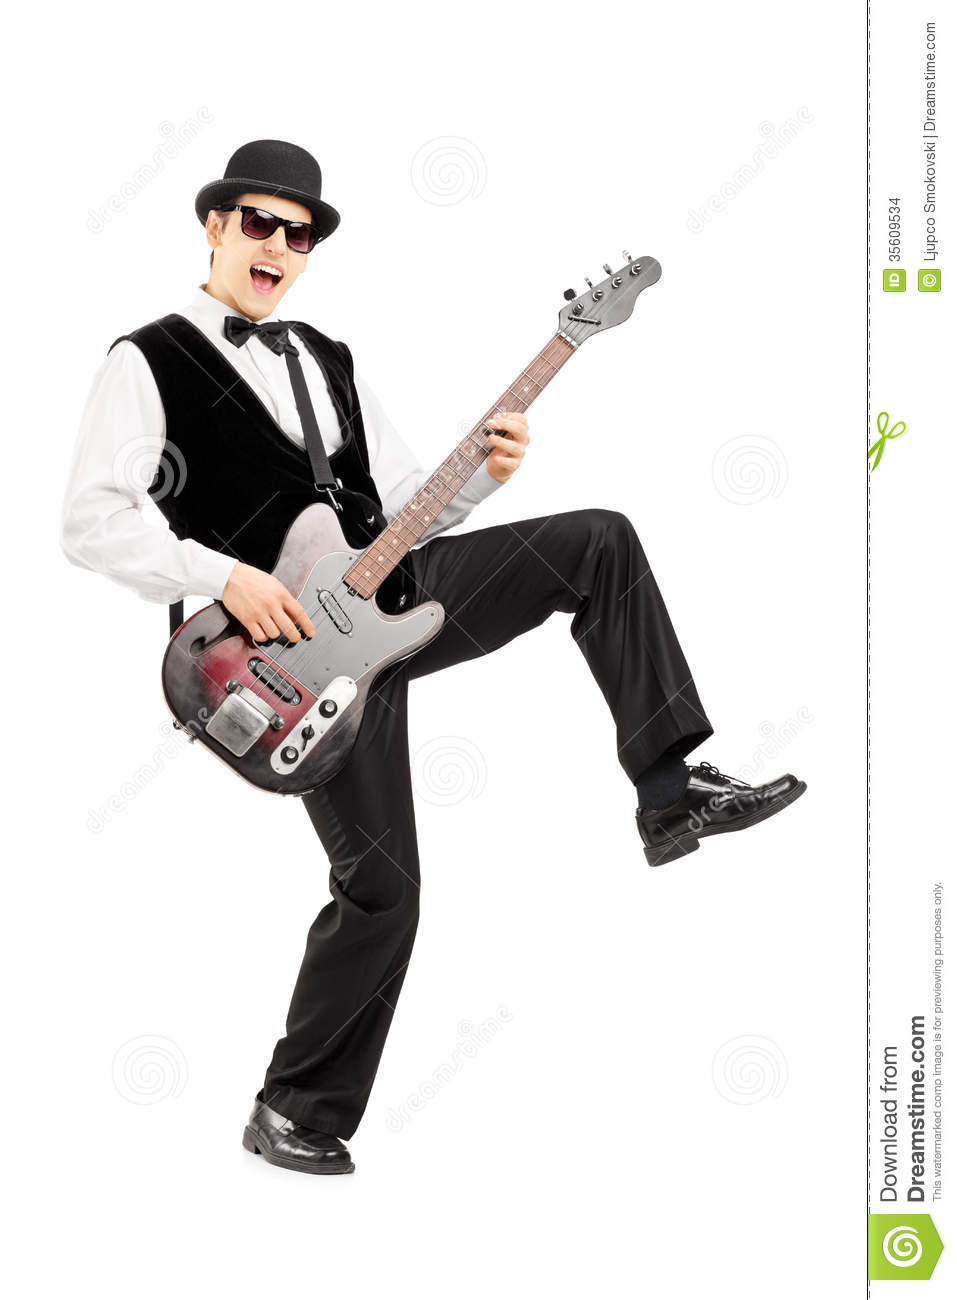 ... of an euphoric man playing a bass guitar isolated on white background